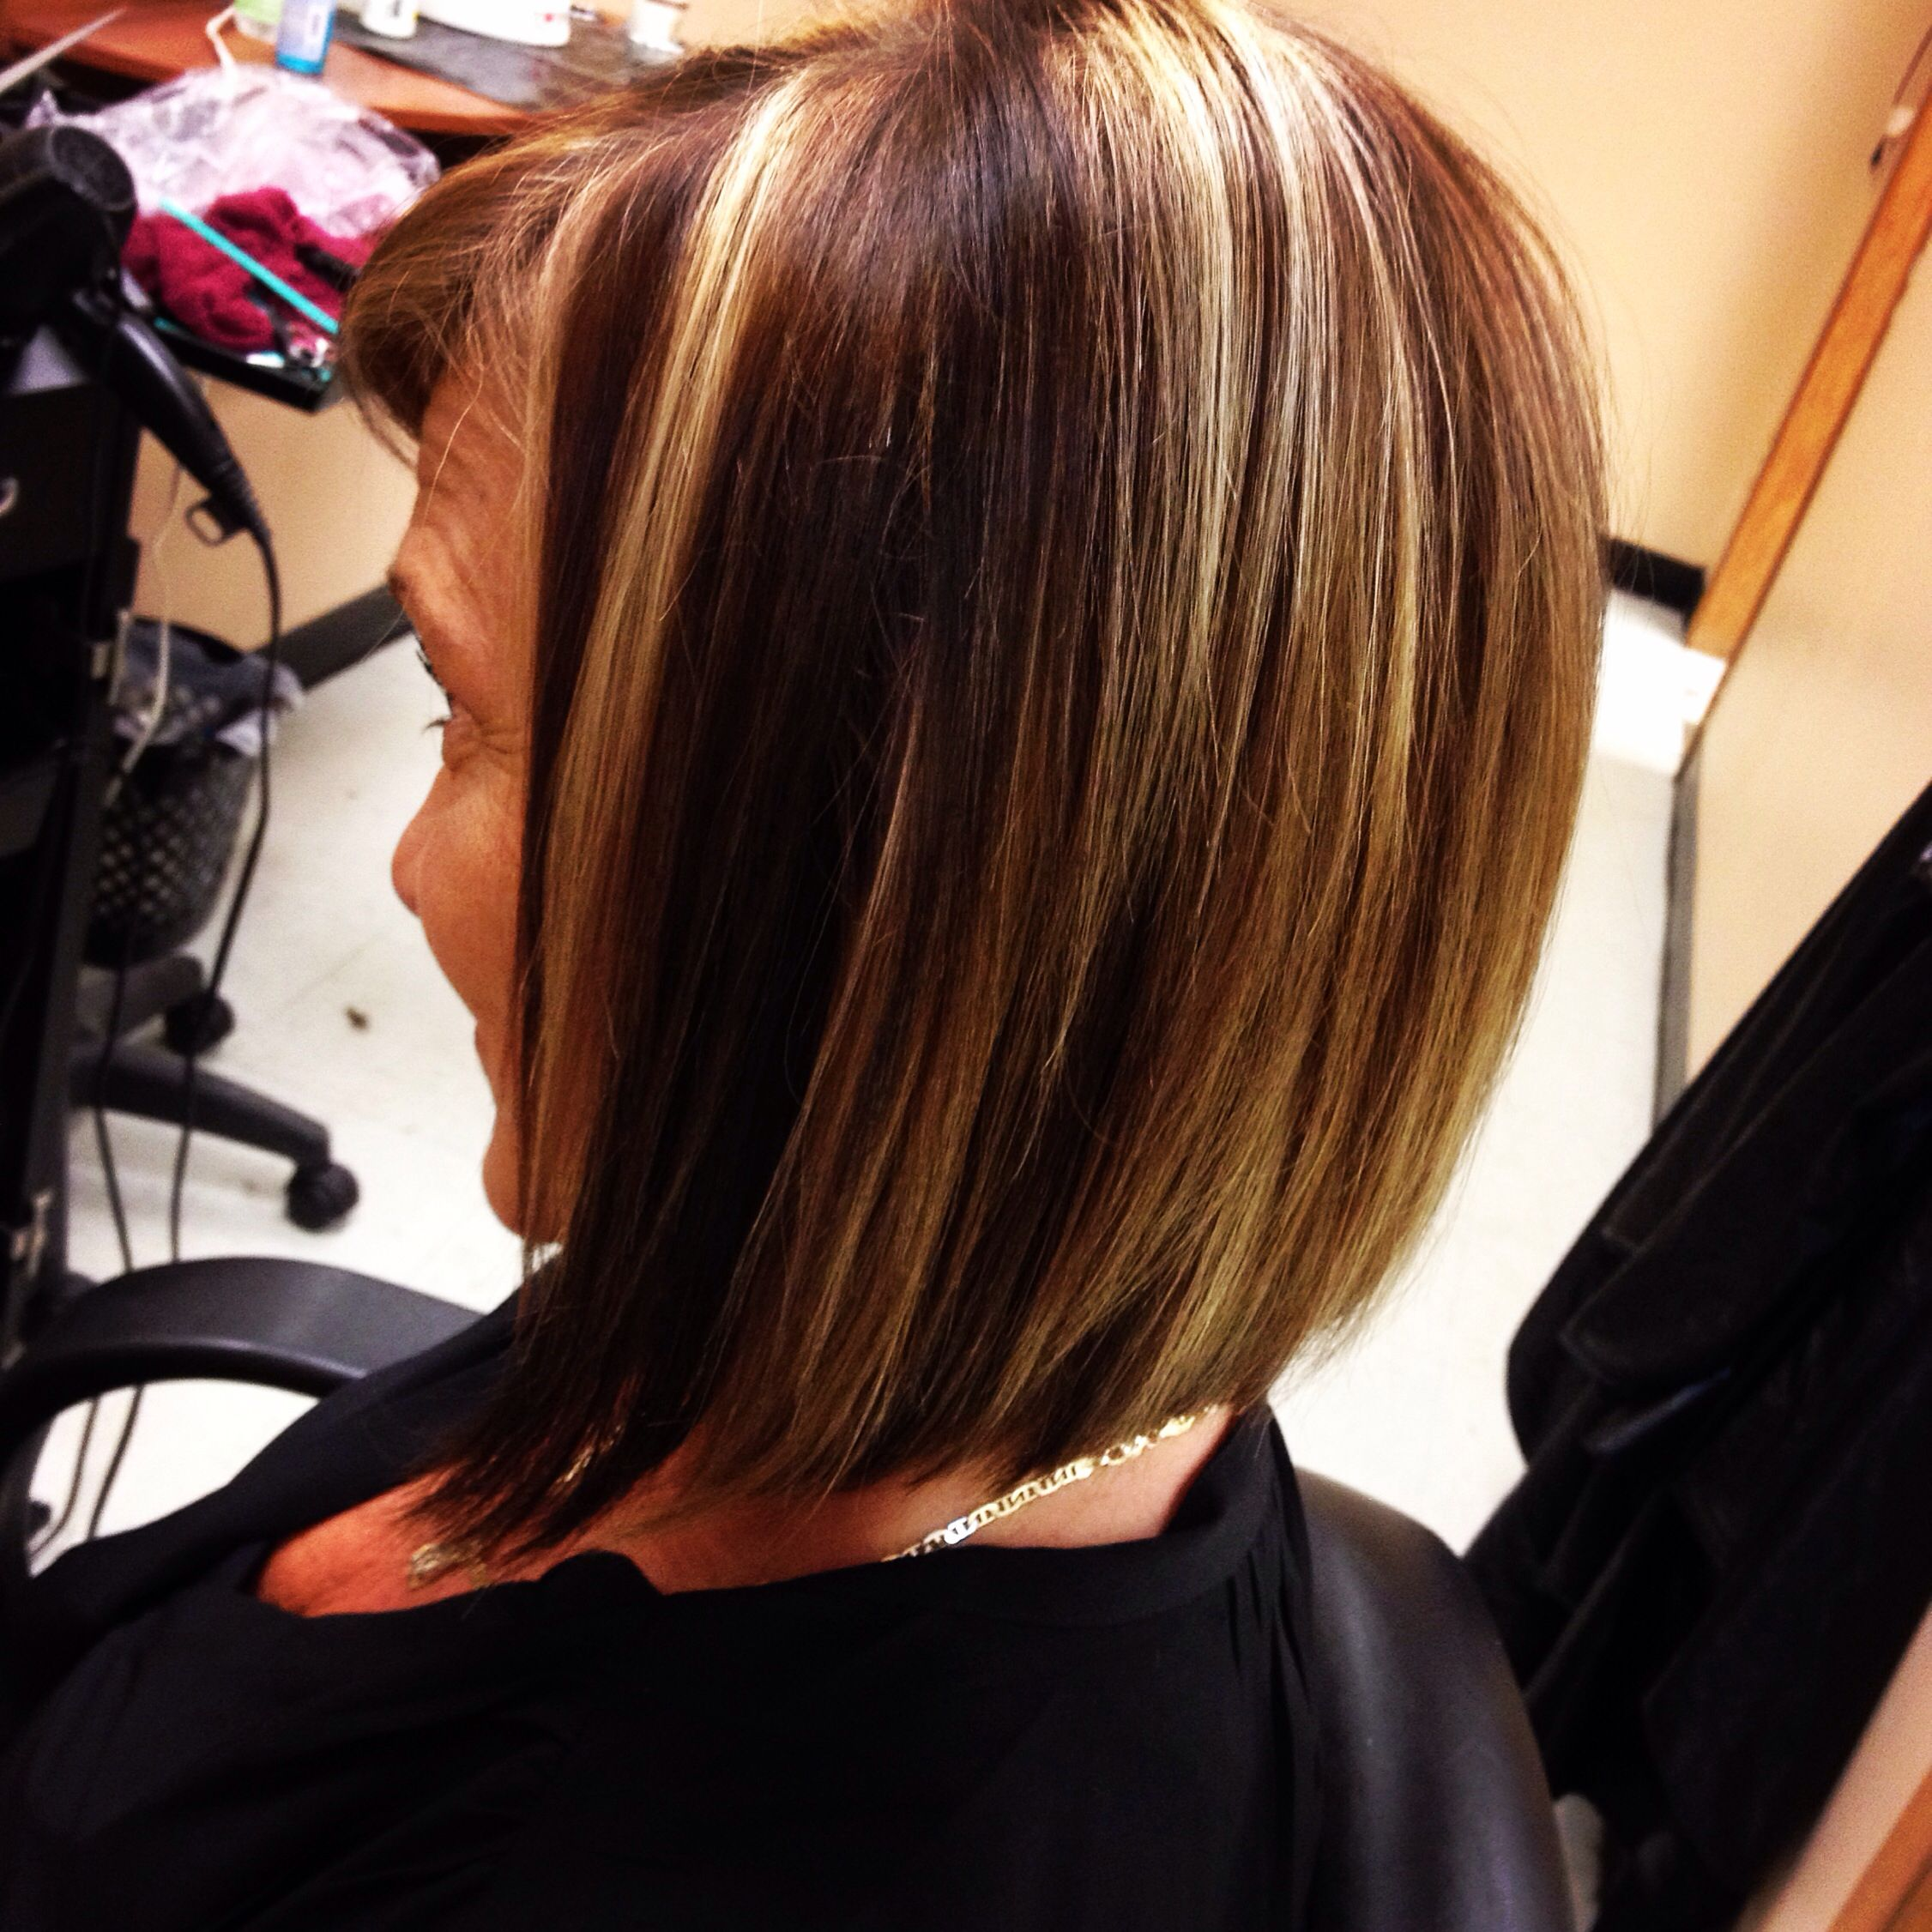 Denise Revive Salon. Angled bob, with rich mocha brown ...